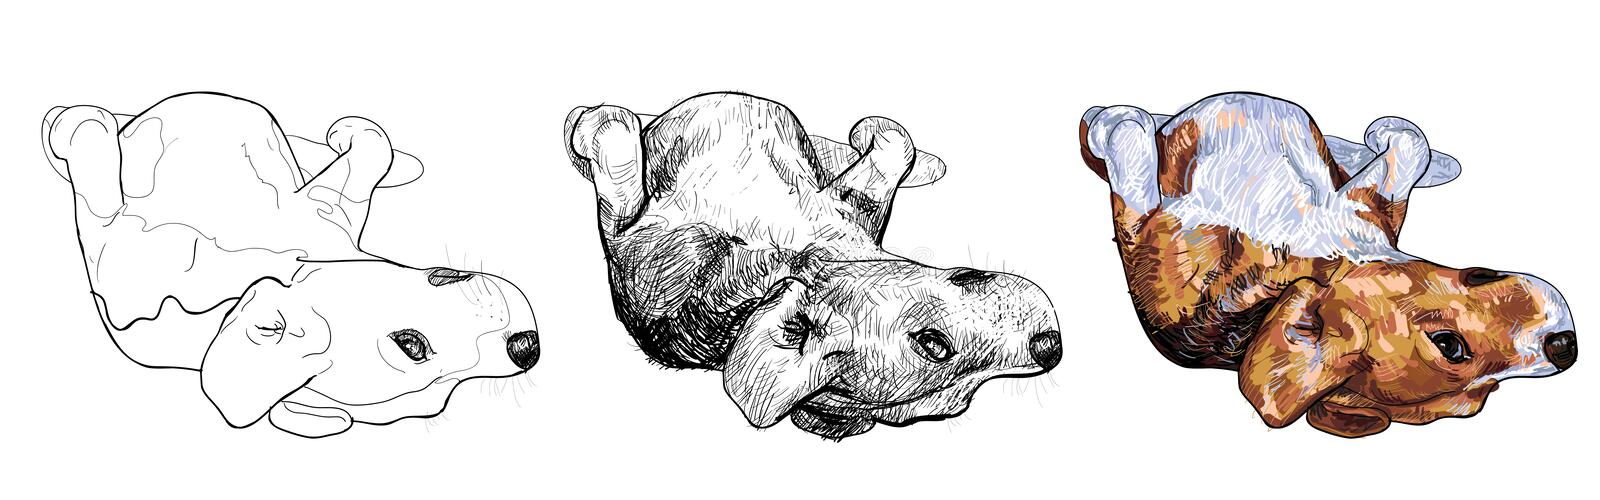 Funny pose of beagle. Beagle is laying down in funny pose royalty free illustration